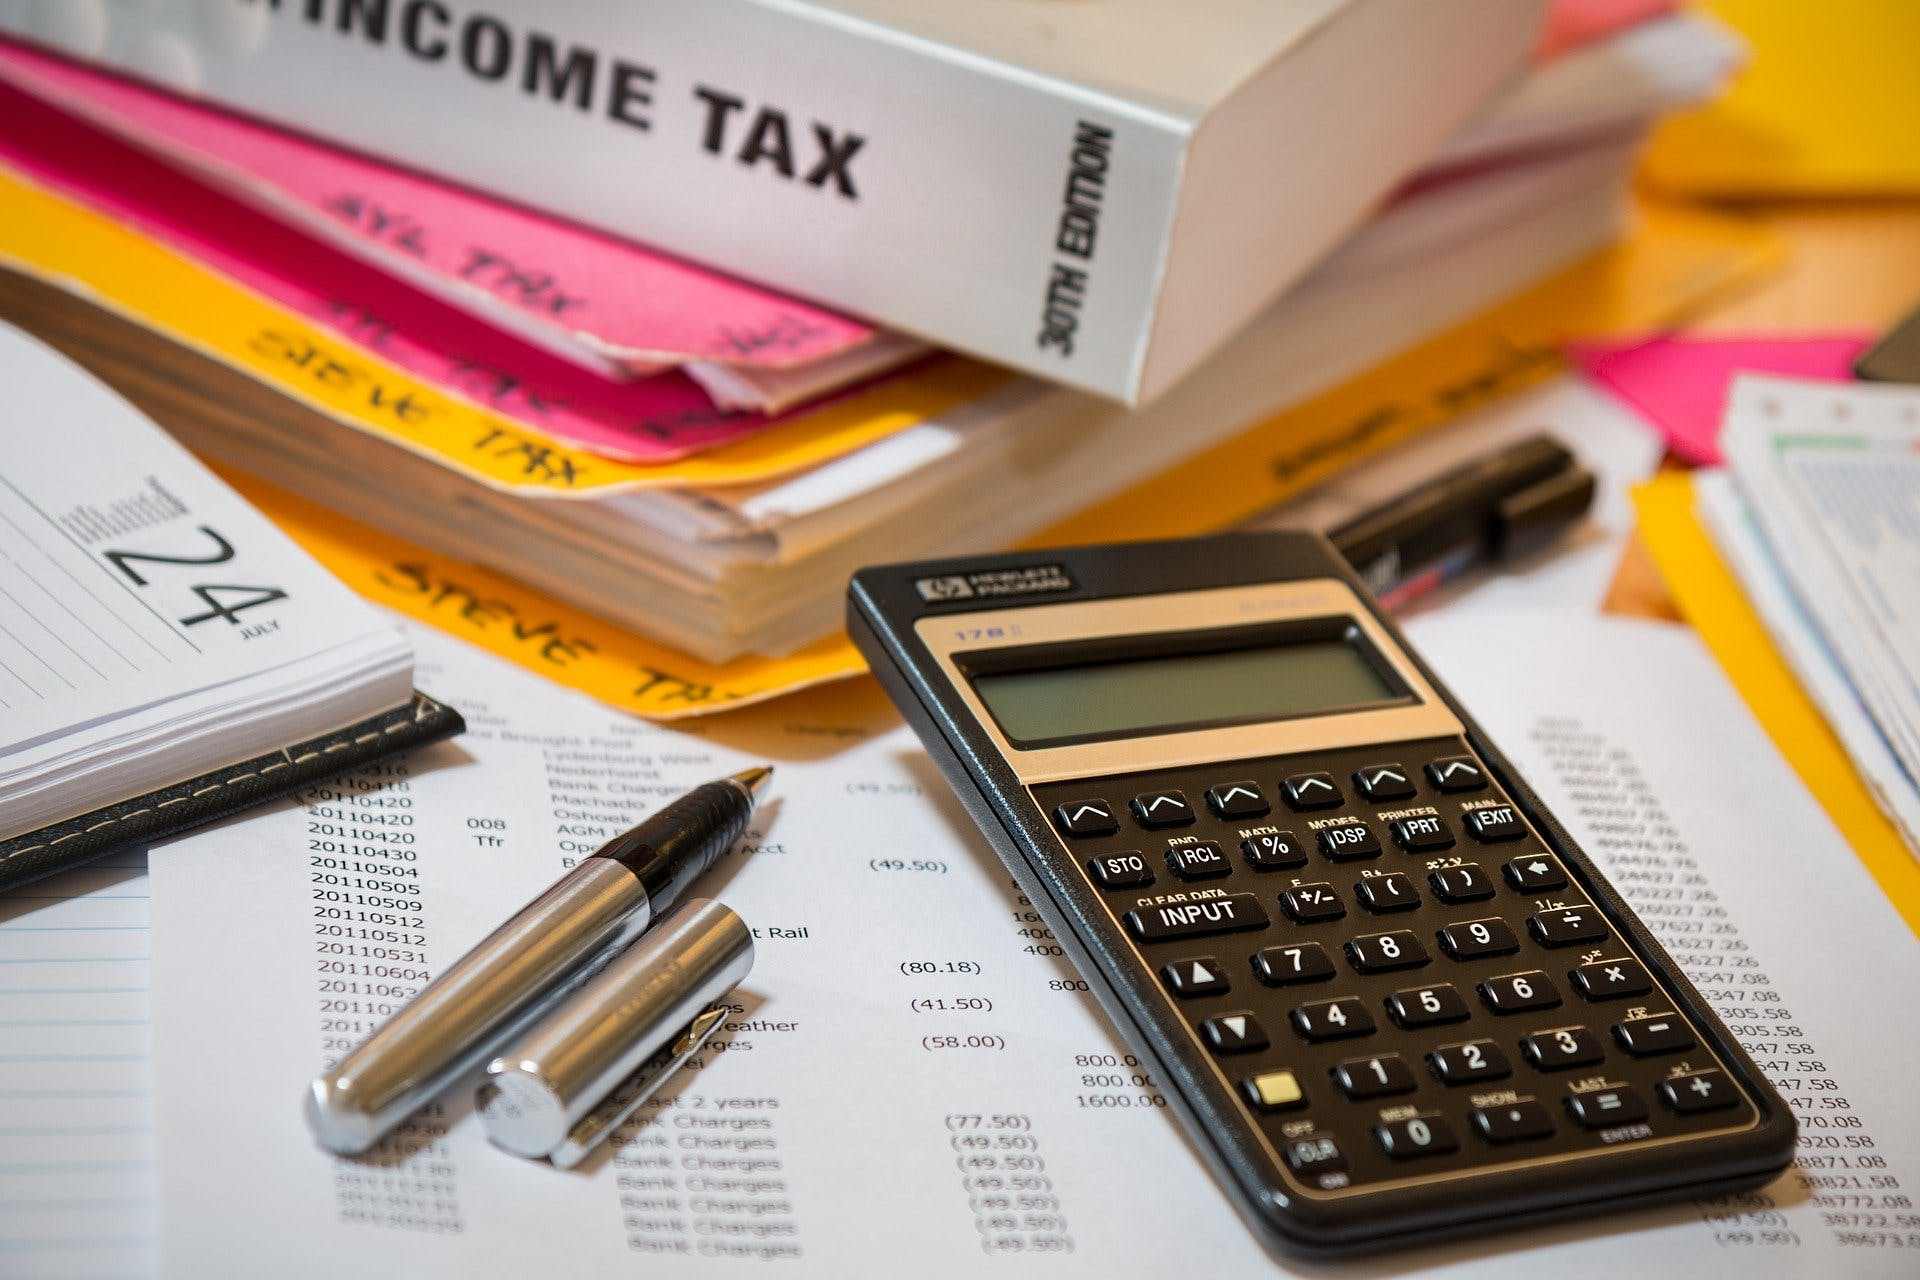 Income tax calculating